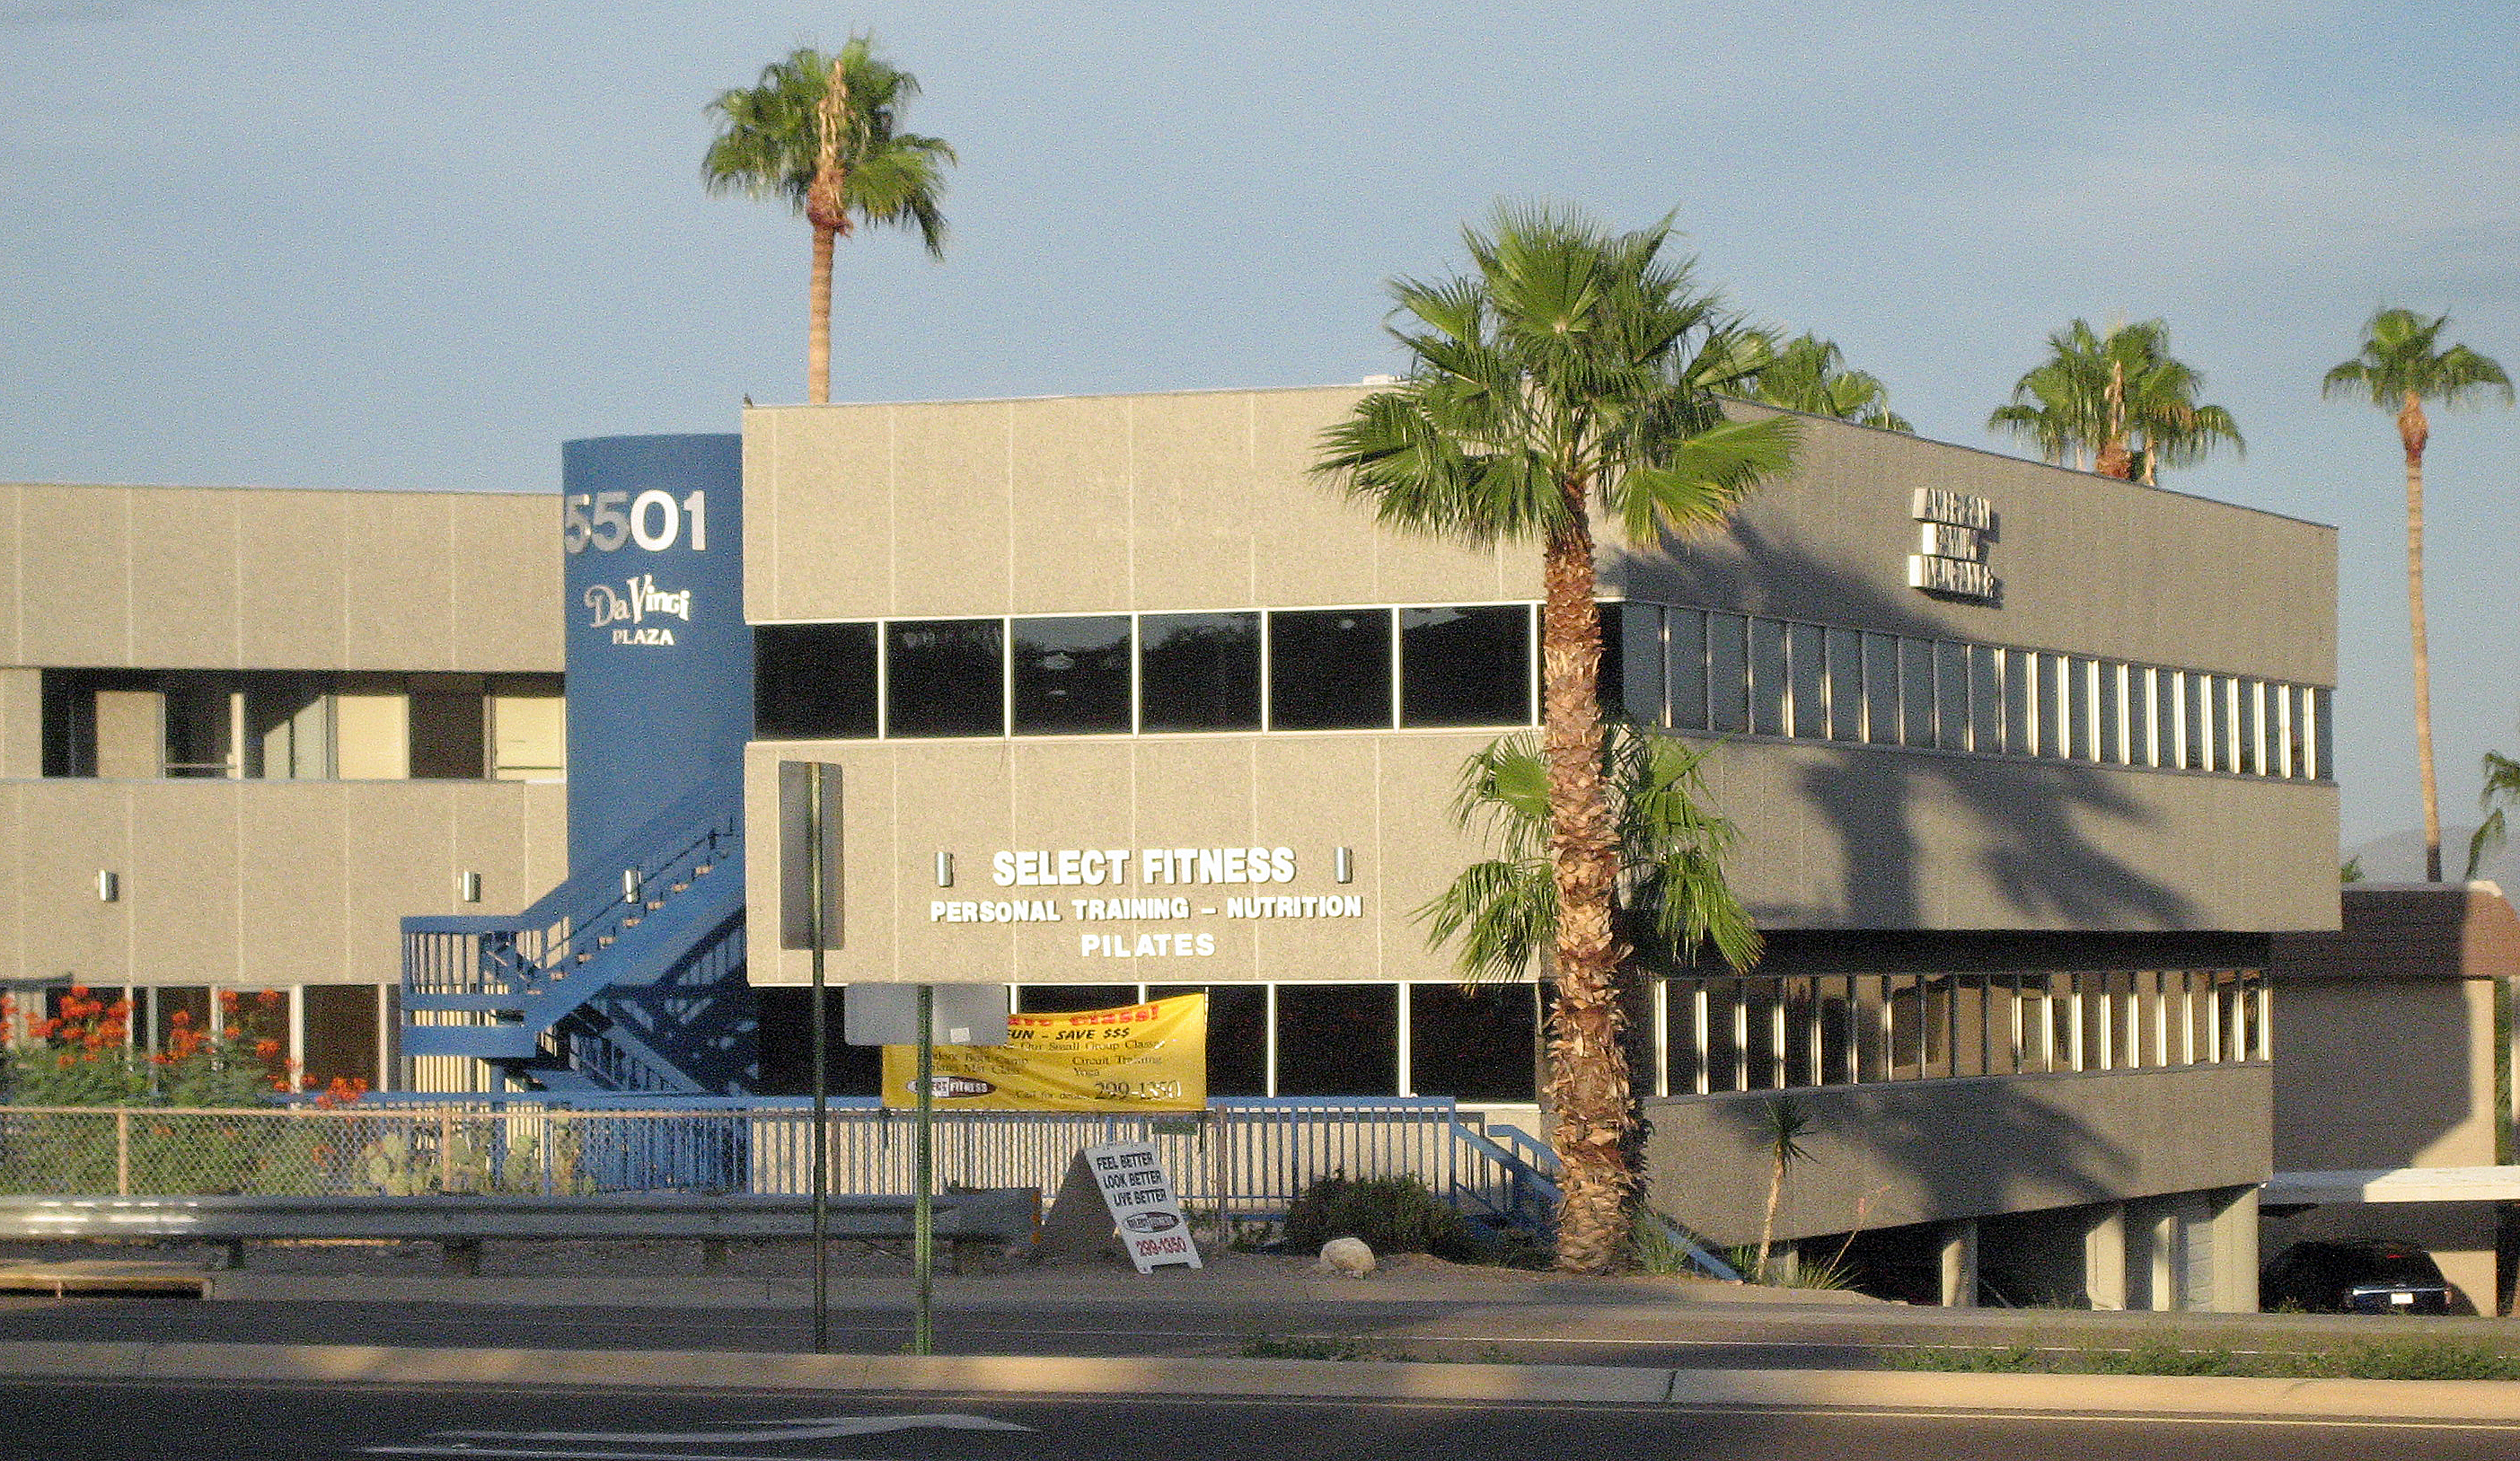 5501 N. Swan Rd, 100% Leased<br />